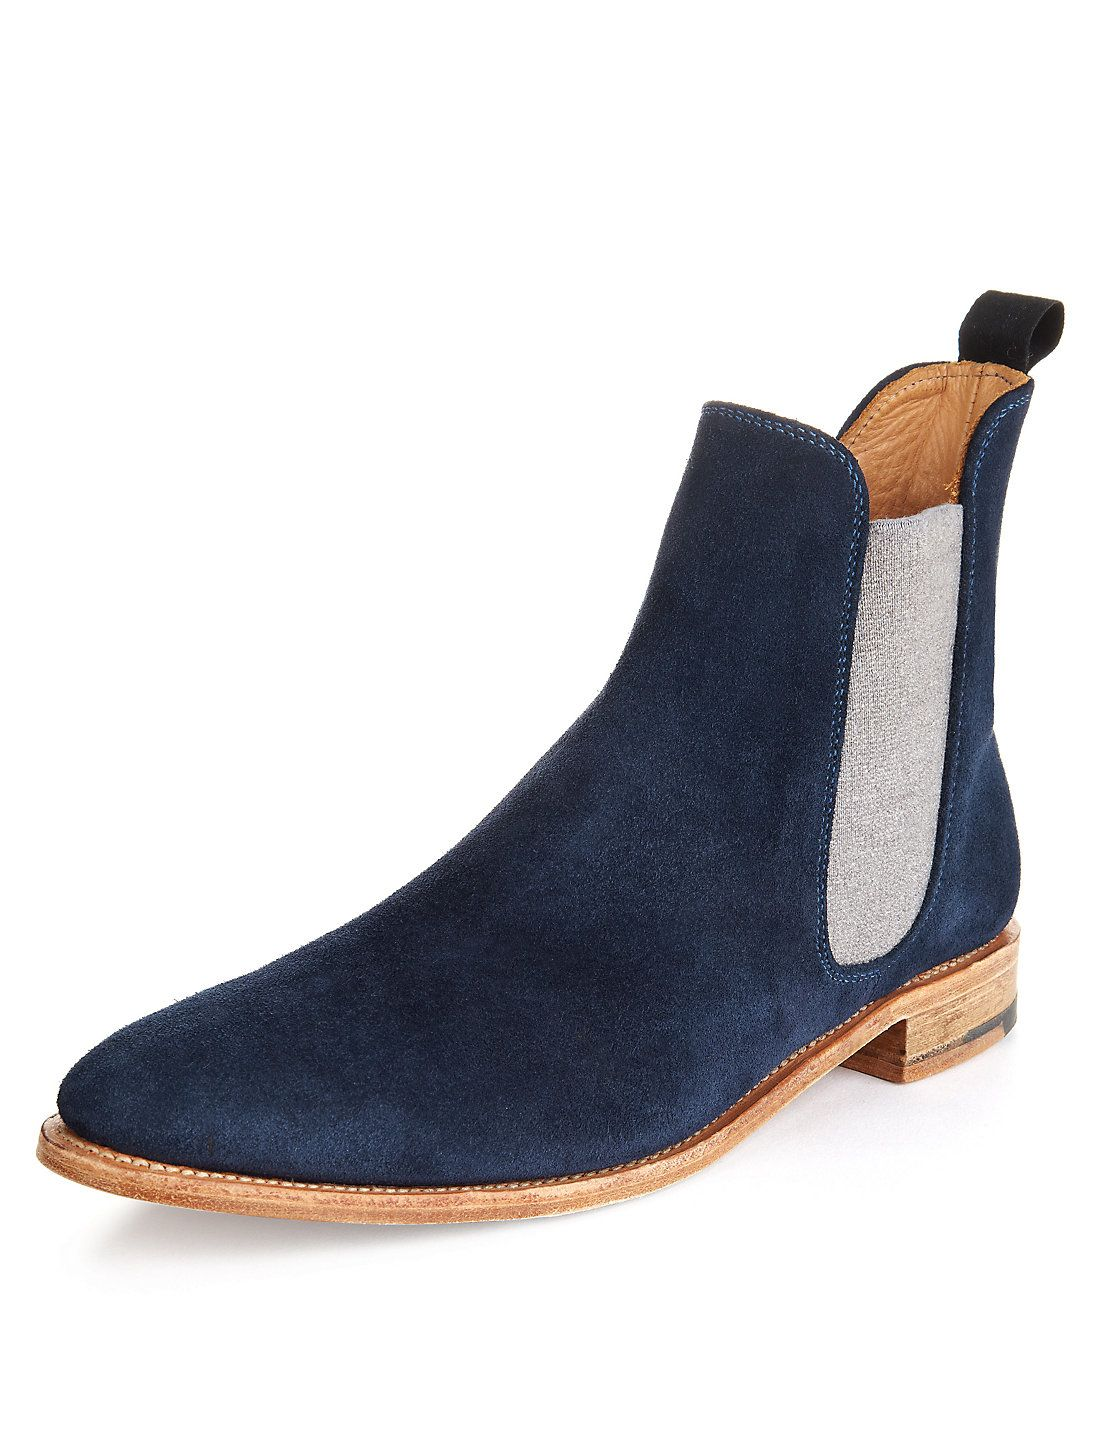 Excellent These Jil Sander Navy Chelsea Boots Are The Perfect Shoes To Rock Any